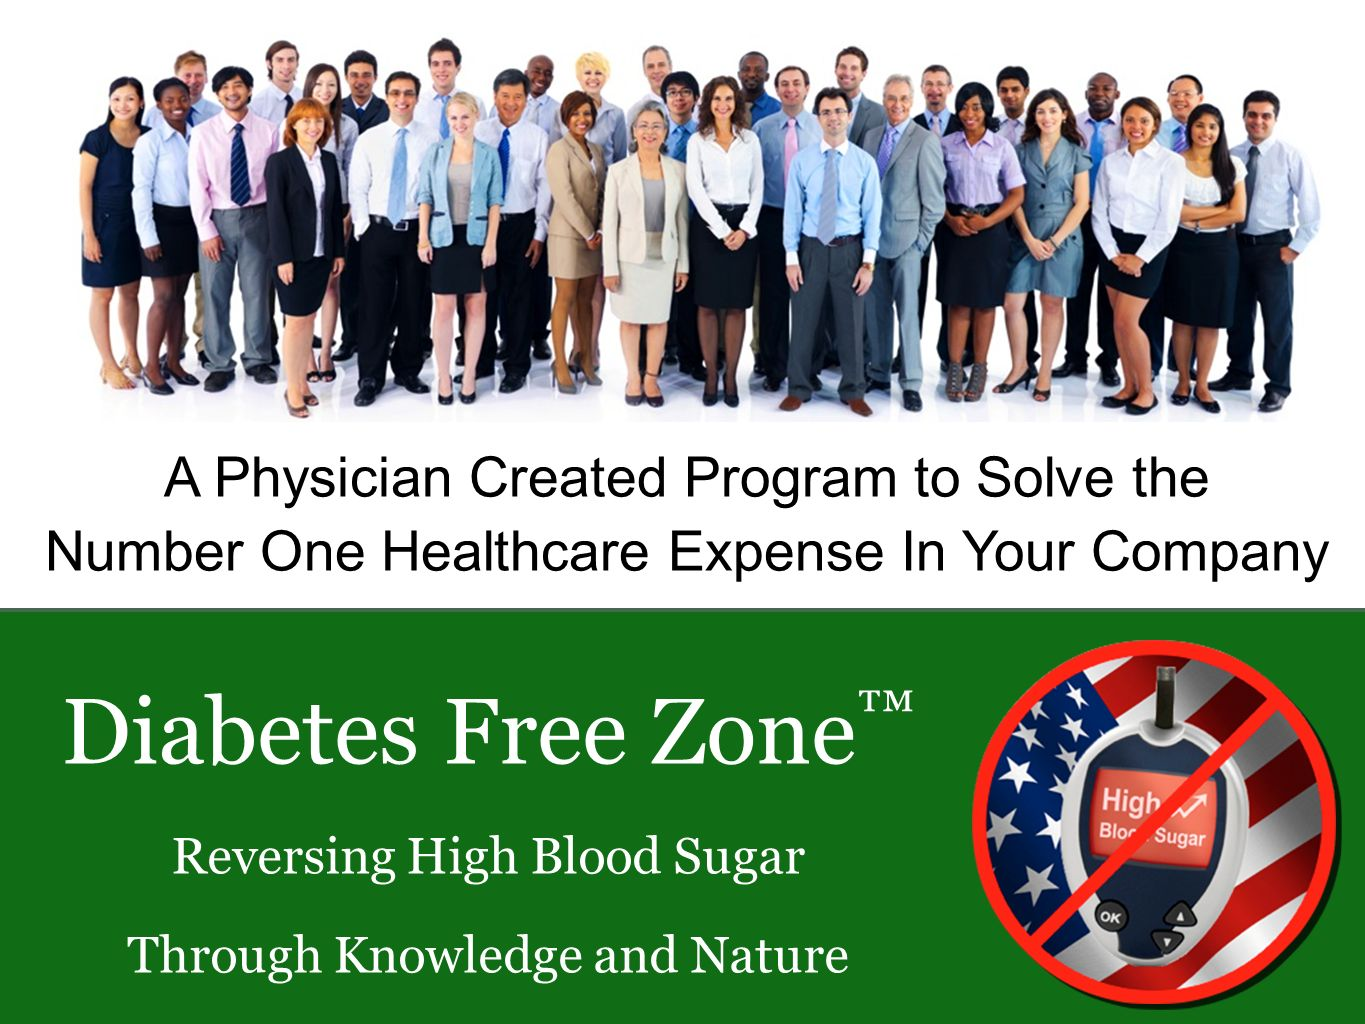 A Physician Created Program to Solve the Number One Healthcare Expense In Your Company Diabetes Free Zone Reversing High Blood Sugar Through Knowledge and Nature